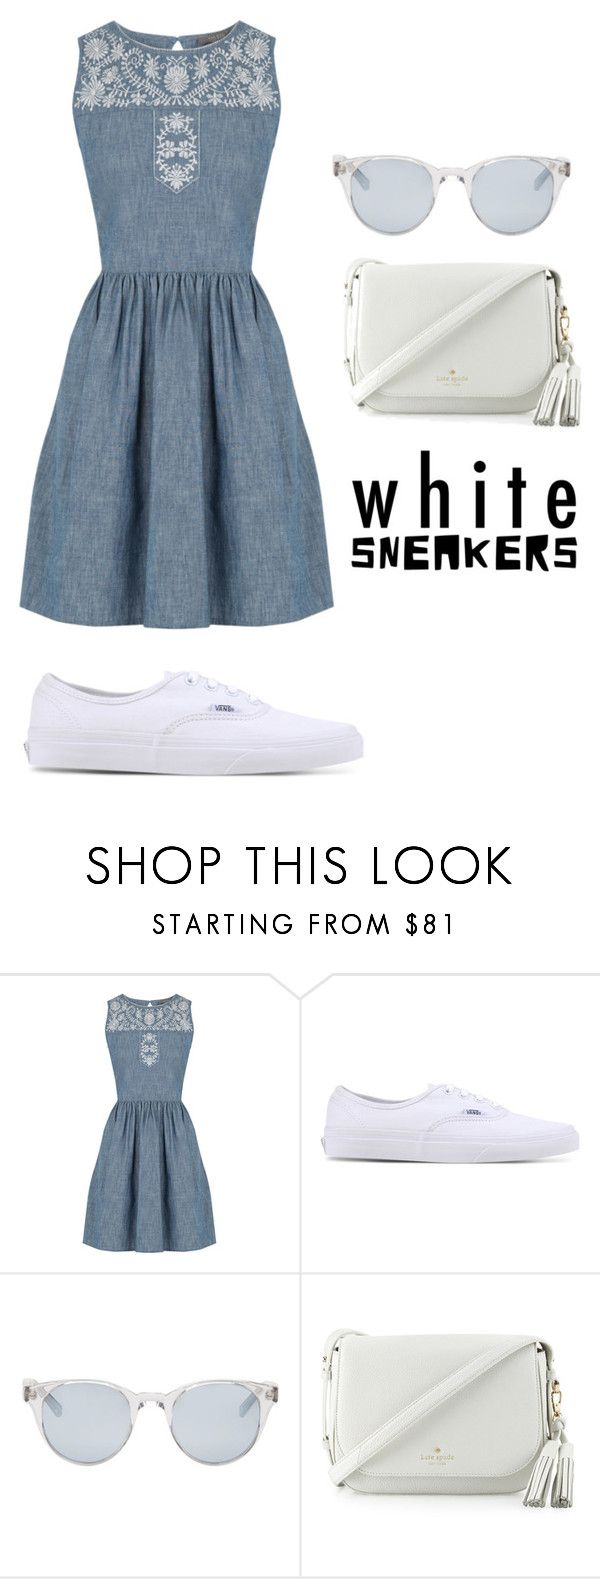 """""""Untitled #730"""" by alison-tann ❤ liked on Polyvore featuring Oasis, Vans, Sun Buddies and Kate Spade"""